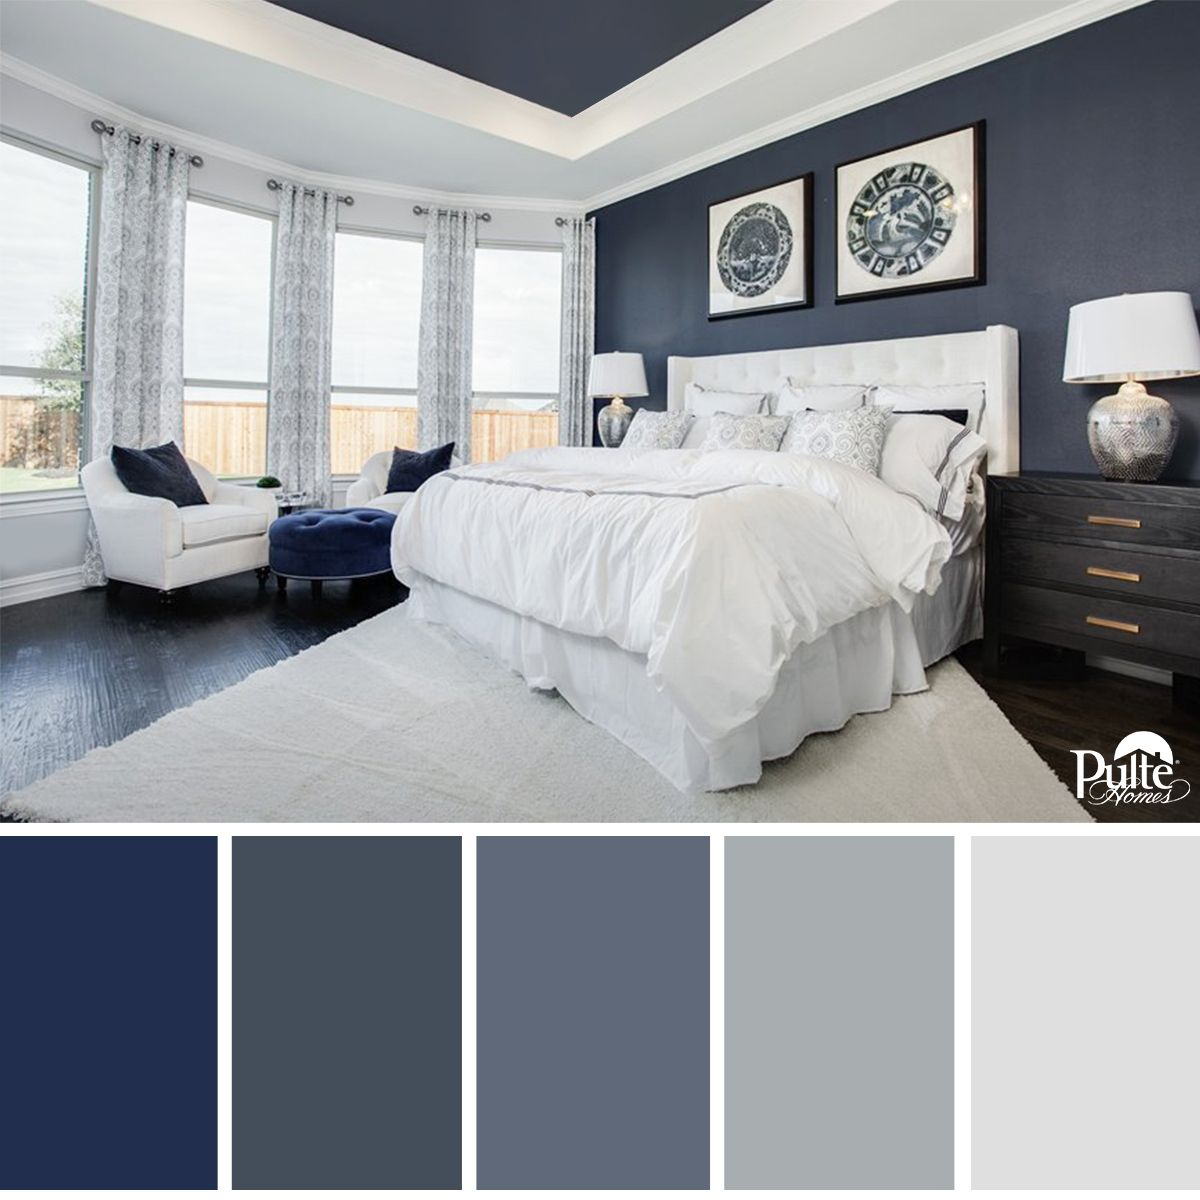 Bedroom Nook Design Ideas Bedroom Colors 2016 Narrow Bedroom Ideas Black Bedroom Cupboards: This Bedroom Design Has The Right Idea. The Rich Blue